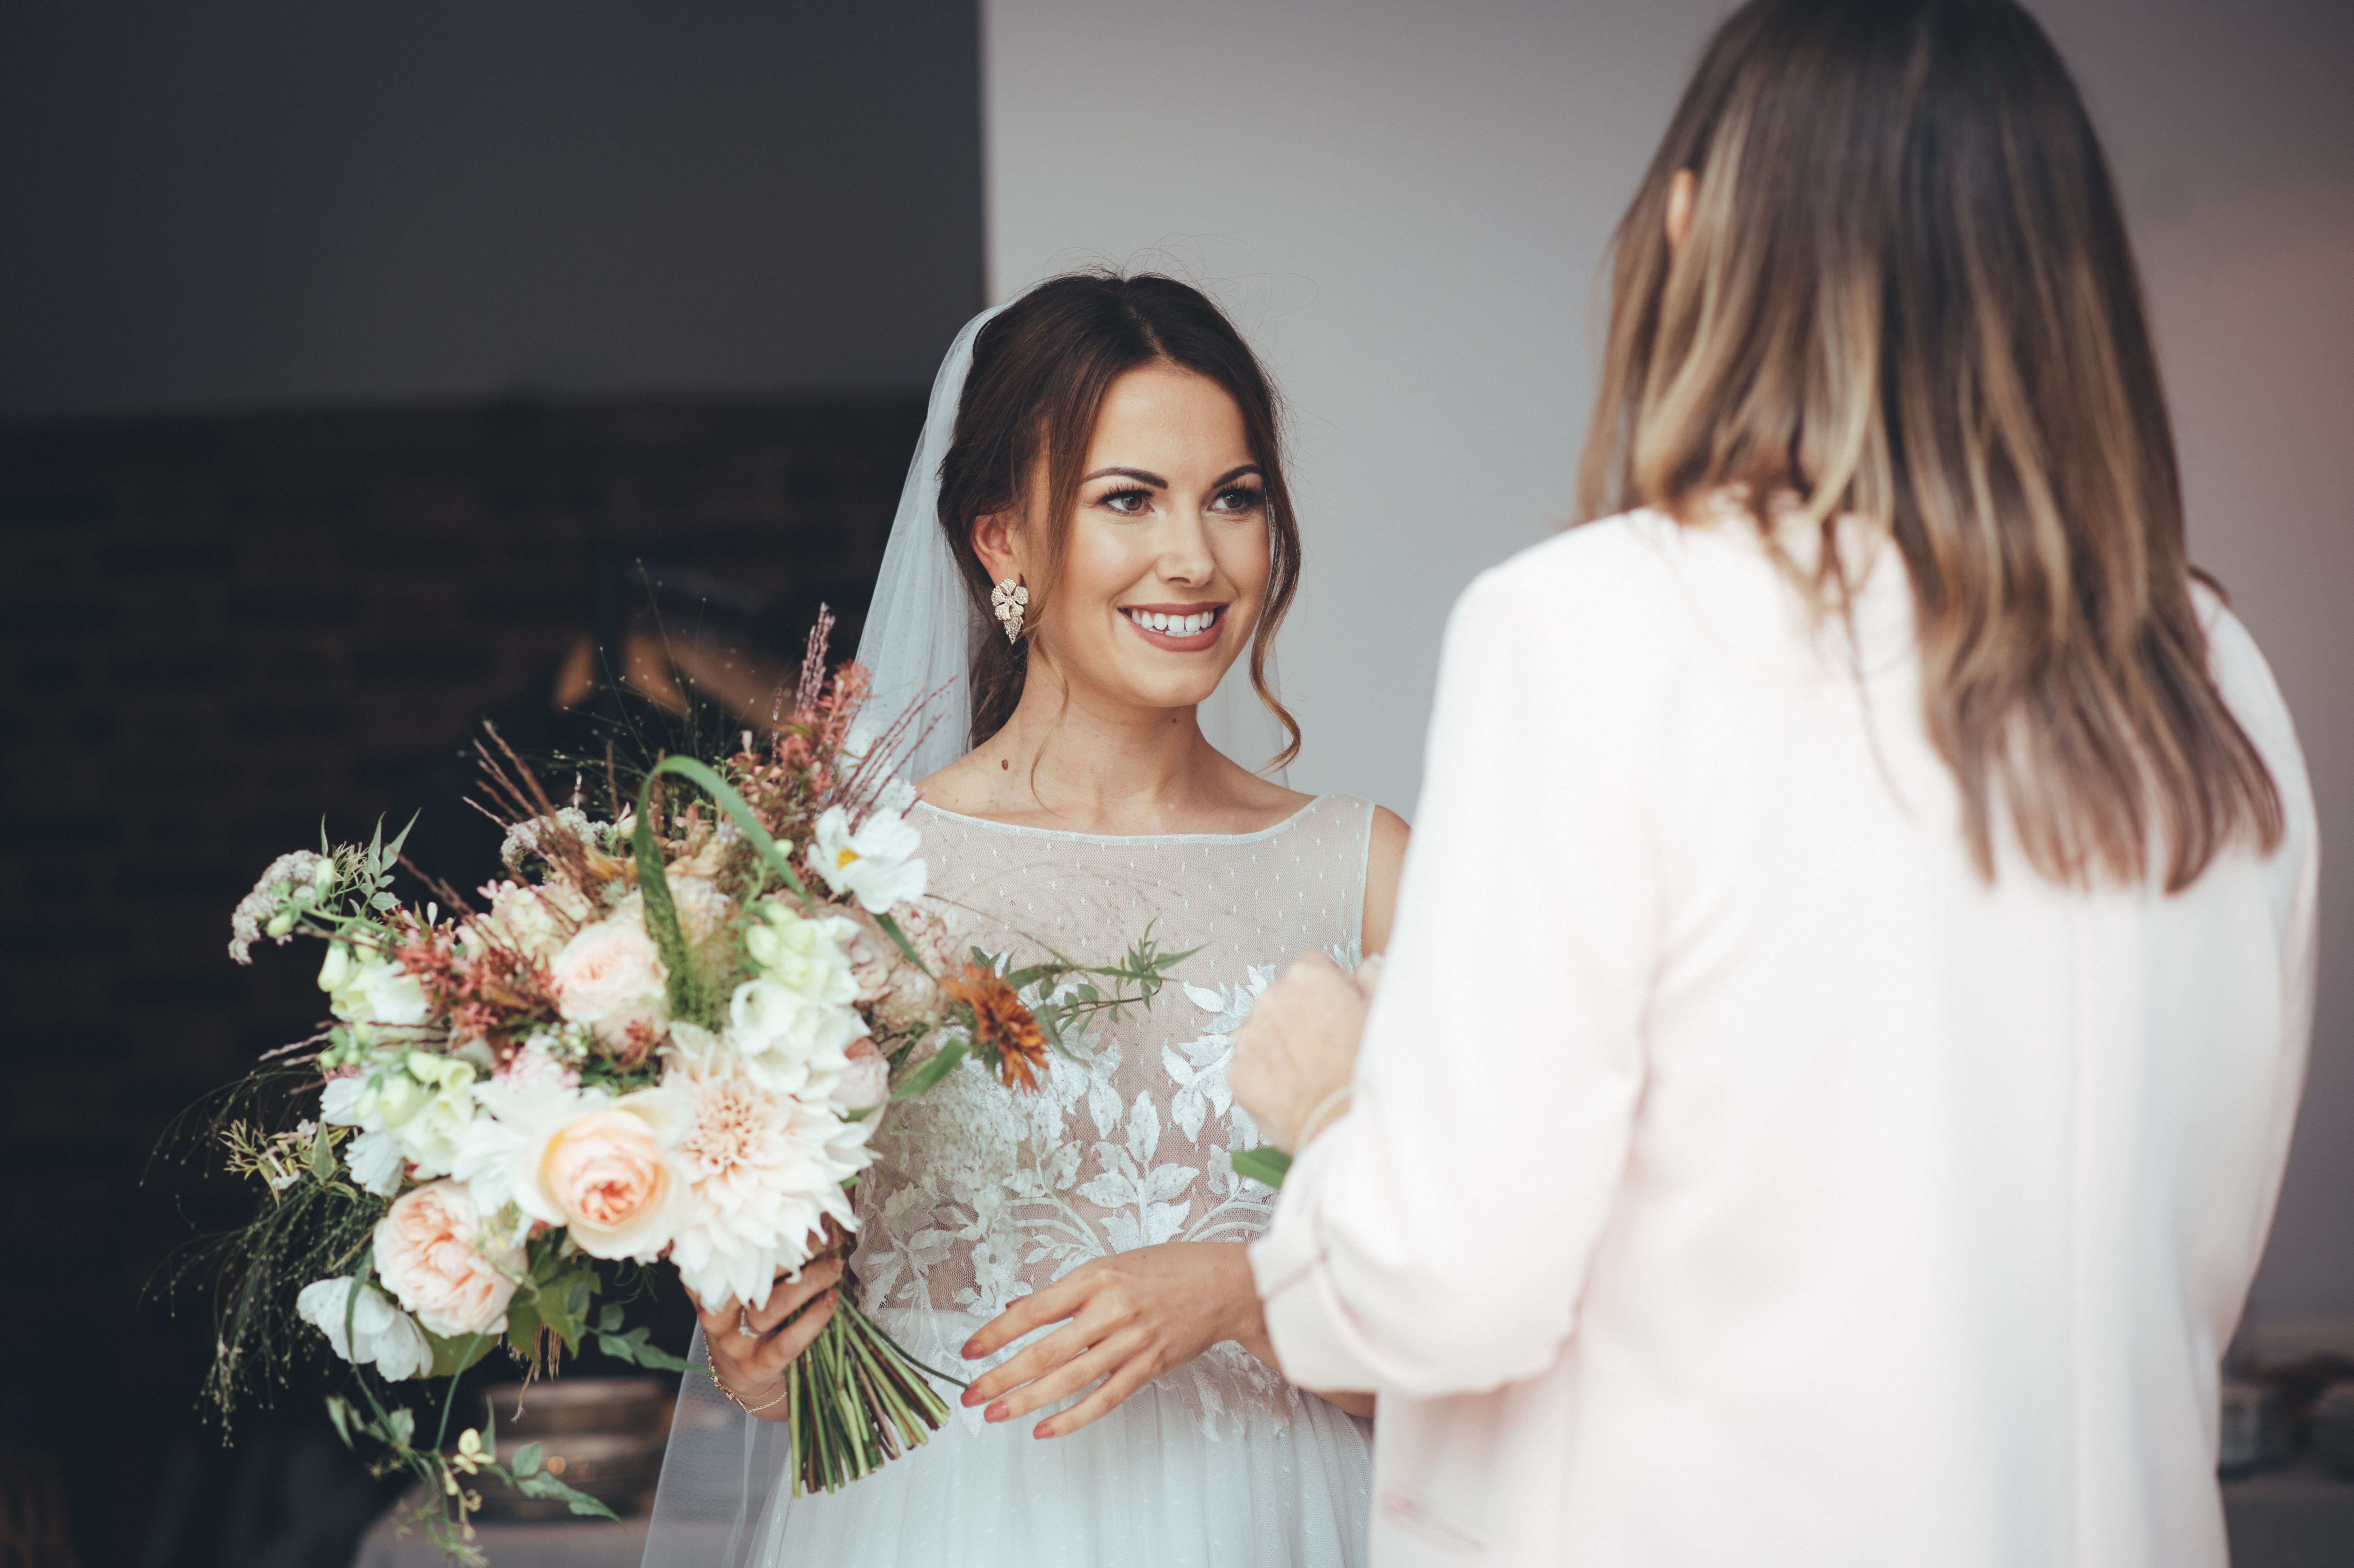 What does a wedding planner do on your wedding day?